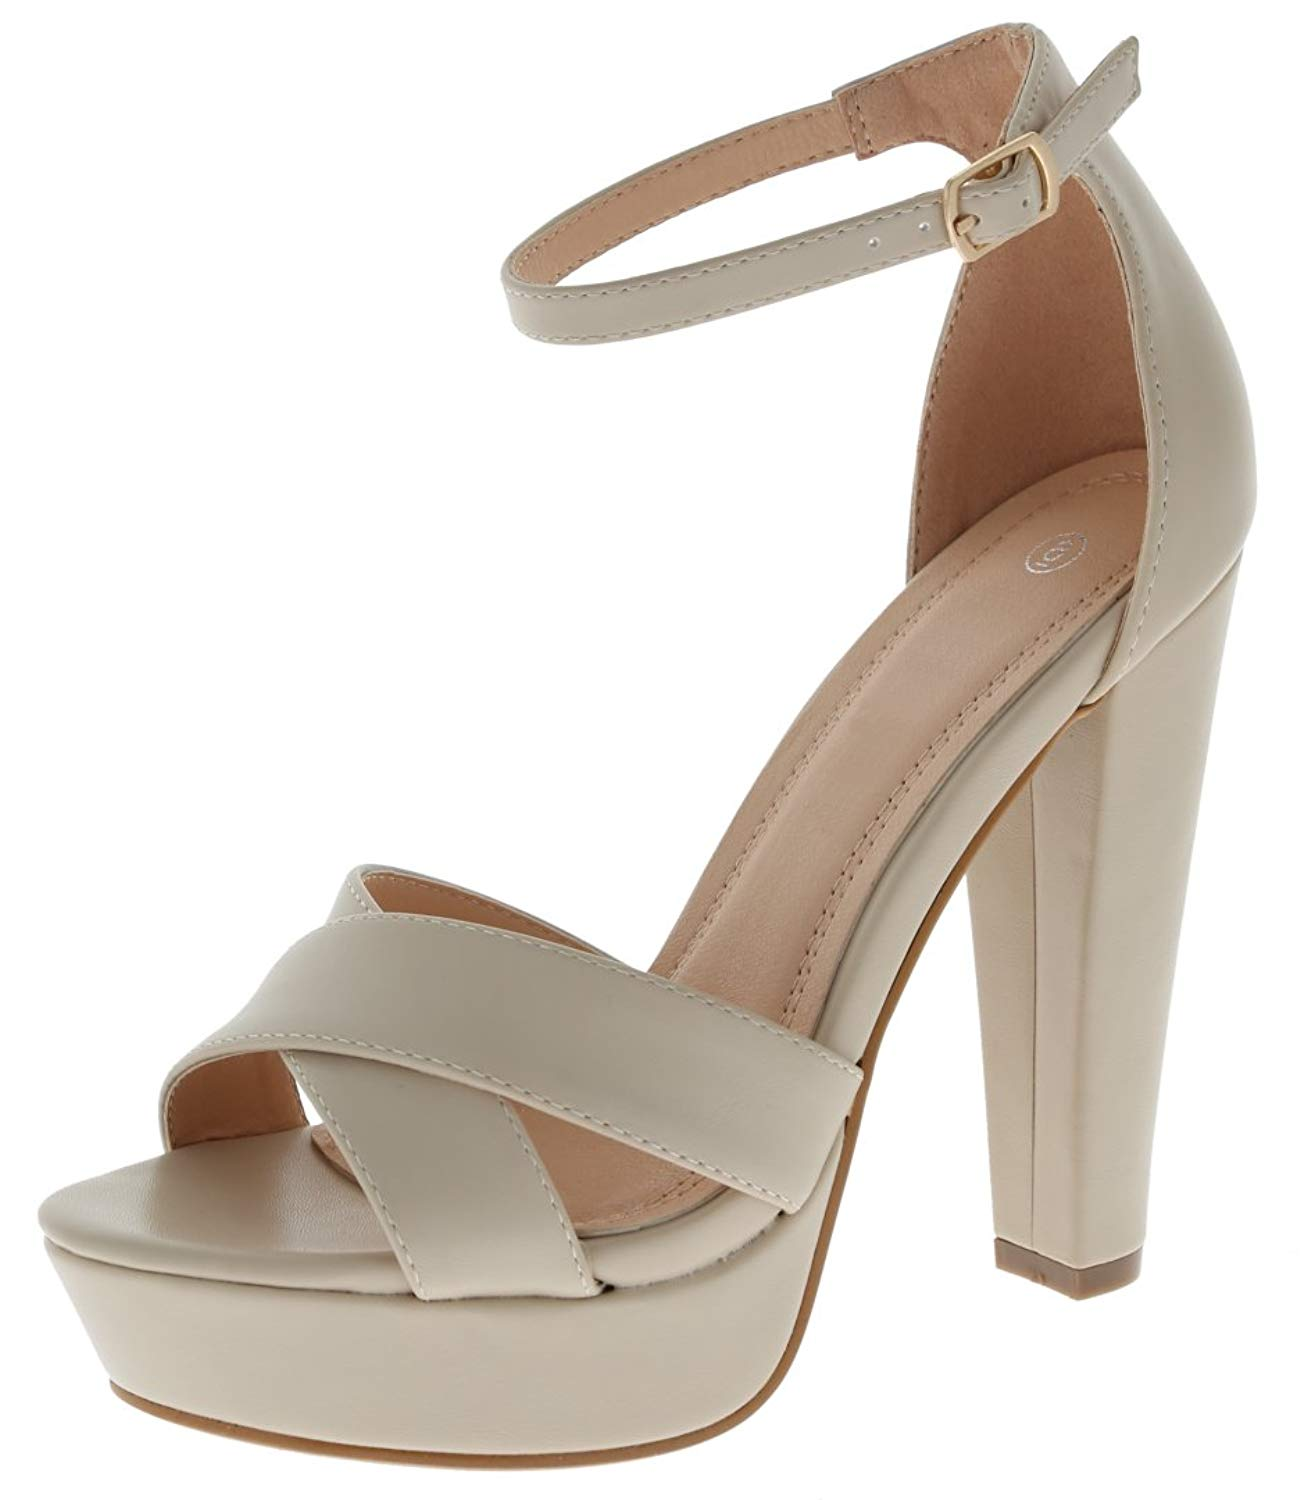 88d182577c3 Cambridge Select Women s Strappy Open Toe Crisscross Buckled Ankle Chunky  Platform High Heel Sandal